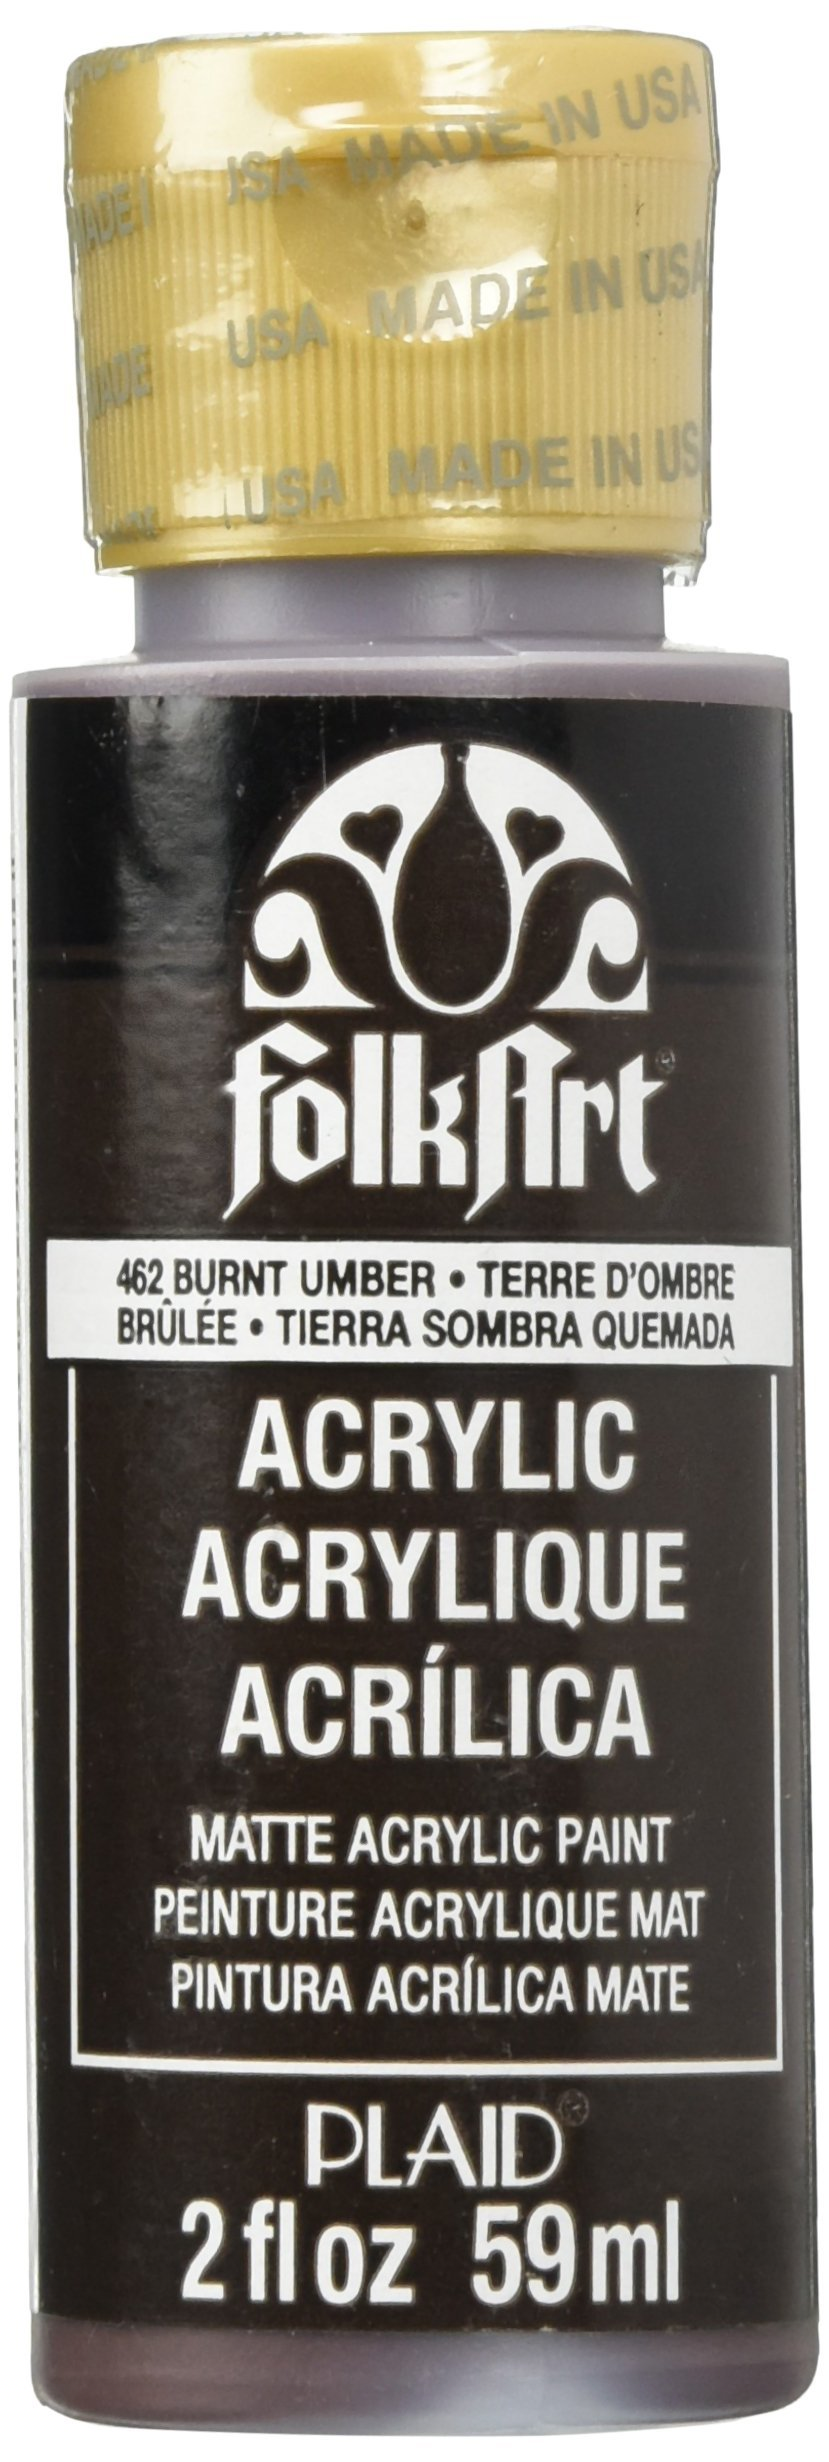 FolkArt Acrylic Paint in Assorted Colors (2 oz), 462, Burnt Umber